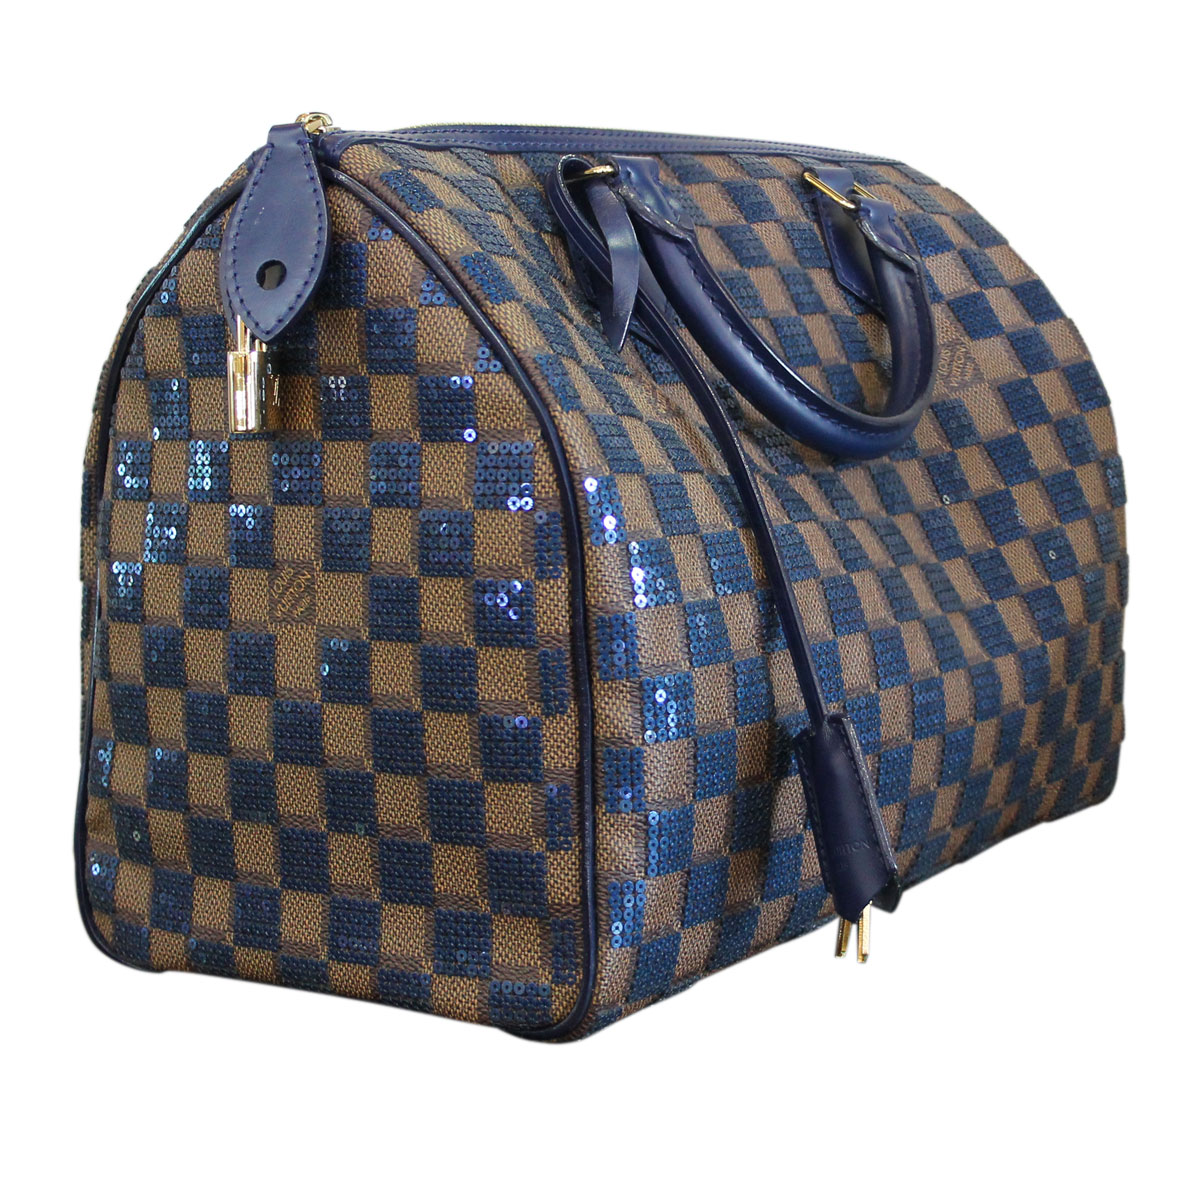 Louis Vuitton speedy 30 Damier Ebene Bag